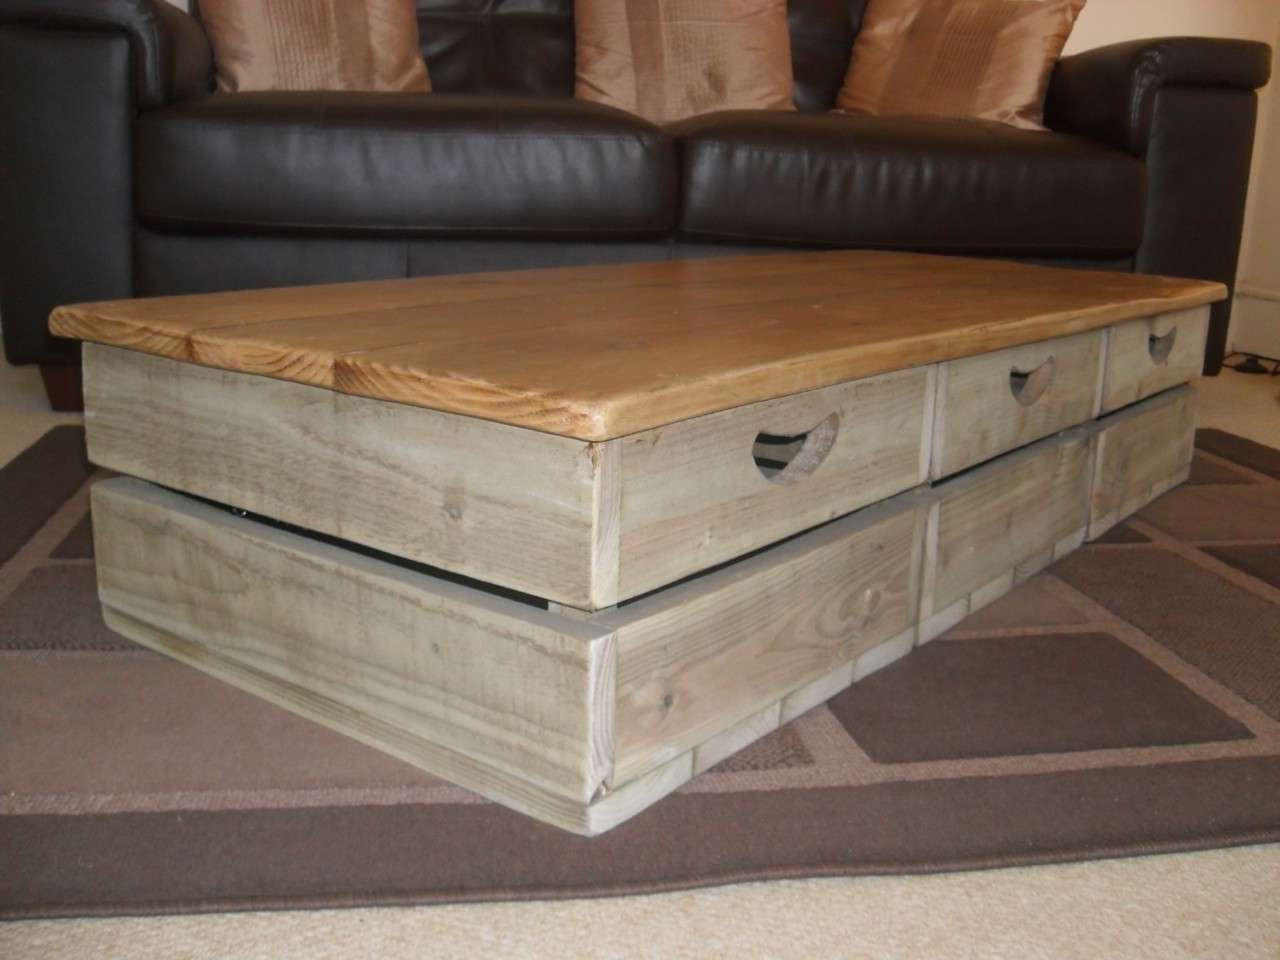 Rustic Coffee Table Sets – Matt And Jentry Home Design Inside Most Up To Date Large Rustic Coffee Tables (View 16 of 20)